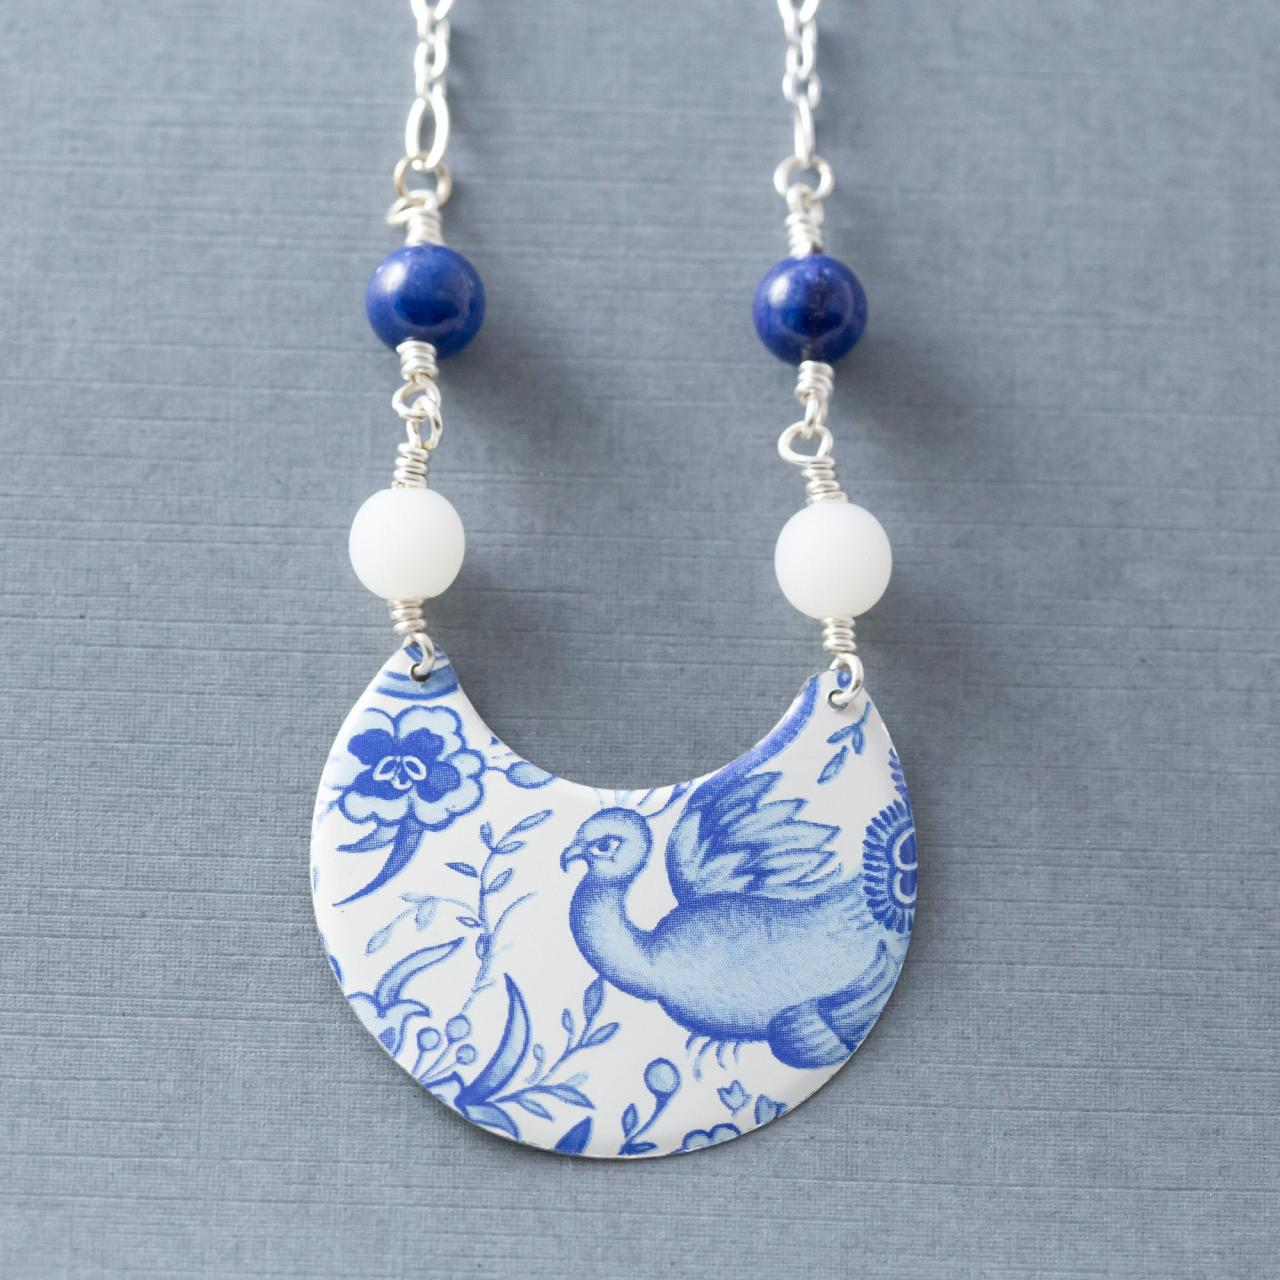 White & Blue Bird Necklace, Delft Necklace, Semicircle Necklace, Cobalt Blue Necklace, Blue Flower Necklace, Tin Jewelry, Delft Jewelry